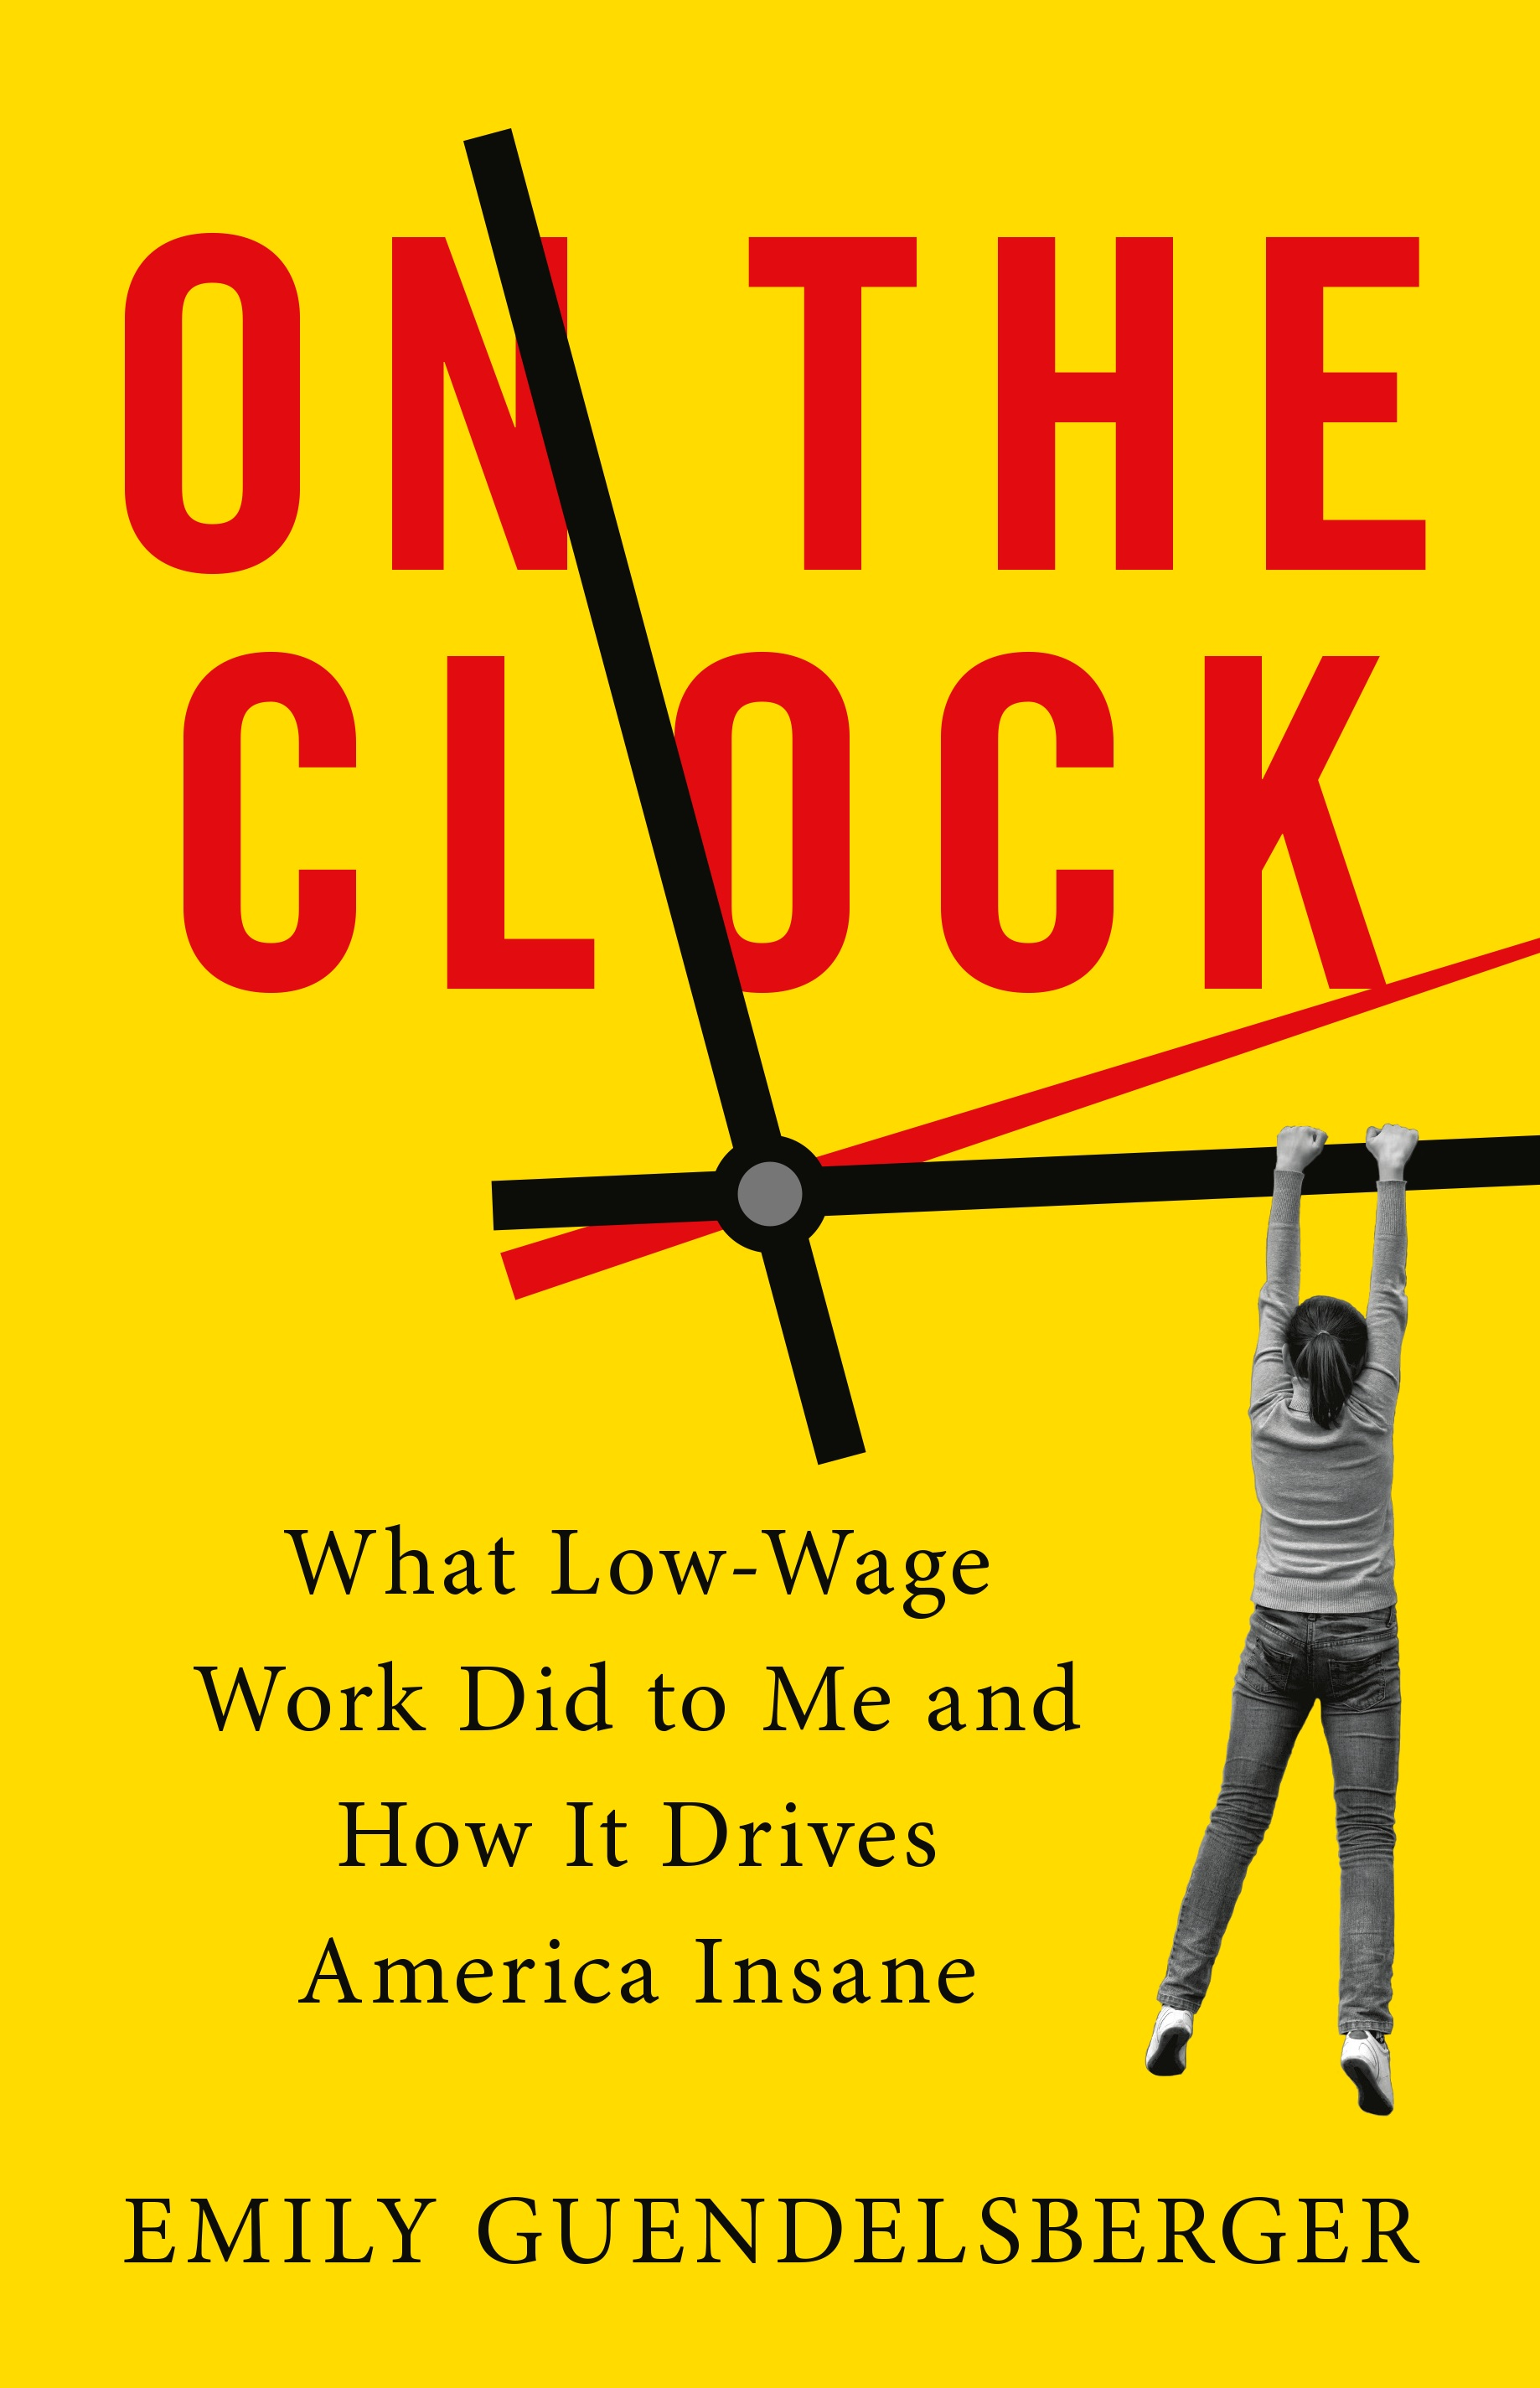 Book Launch: On The Clock by Emily Guendelsberger in conversation with Jessica Bruder